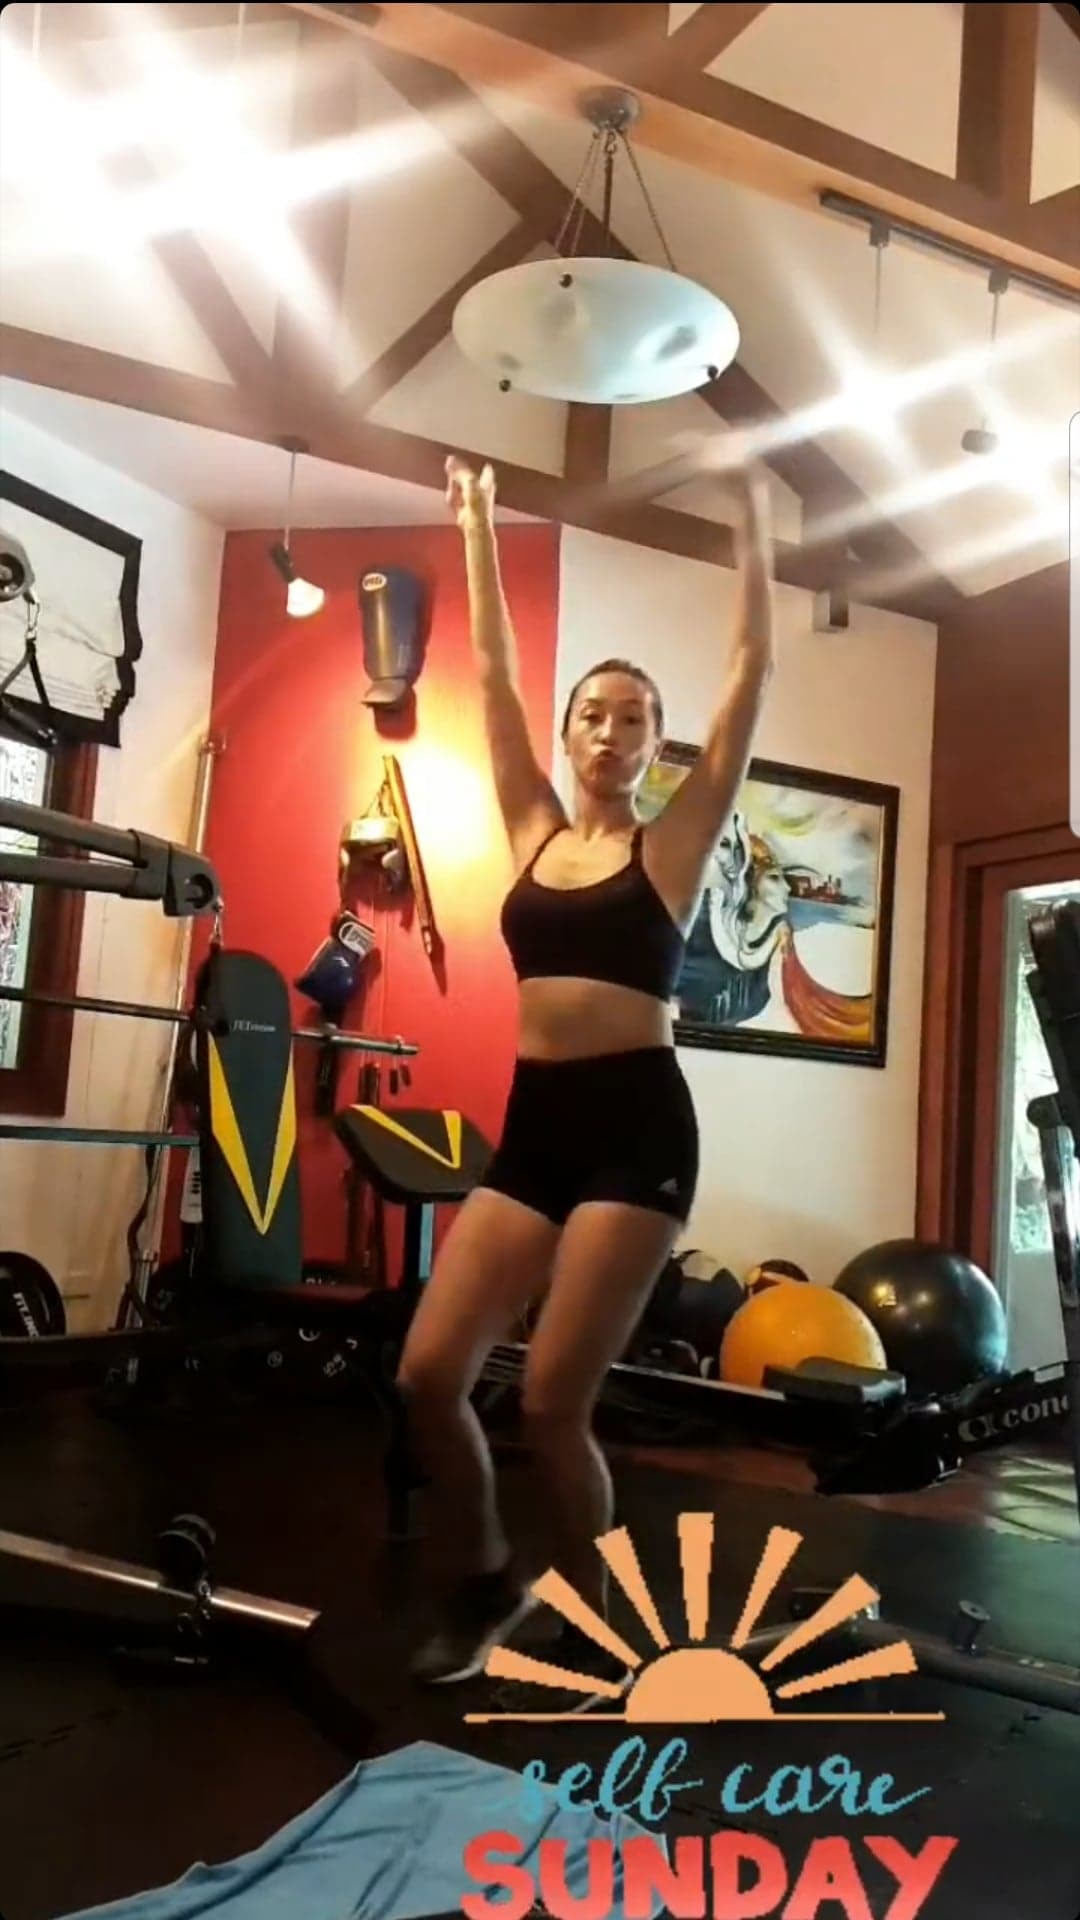 Solenn Heussaff Works Out While 4 And A Half Months Pregnant